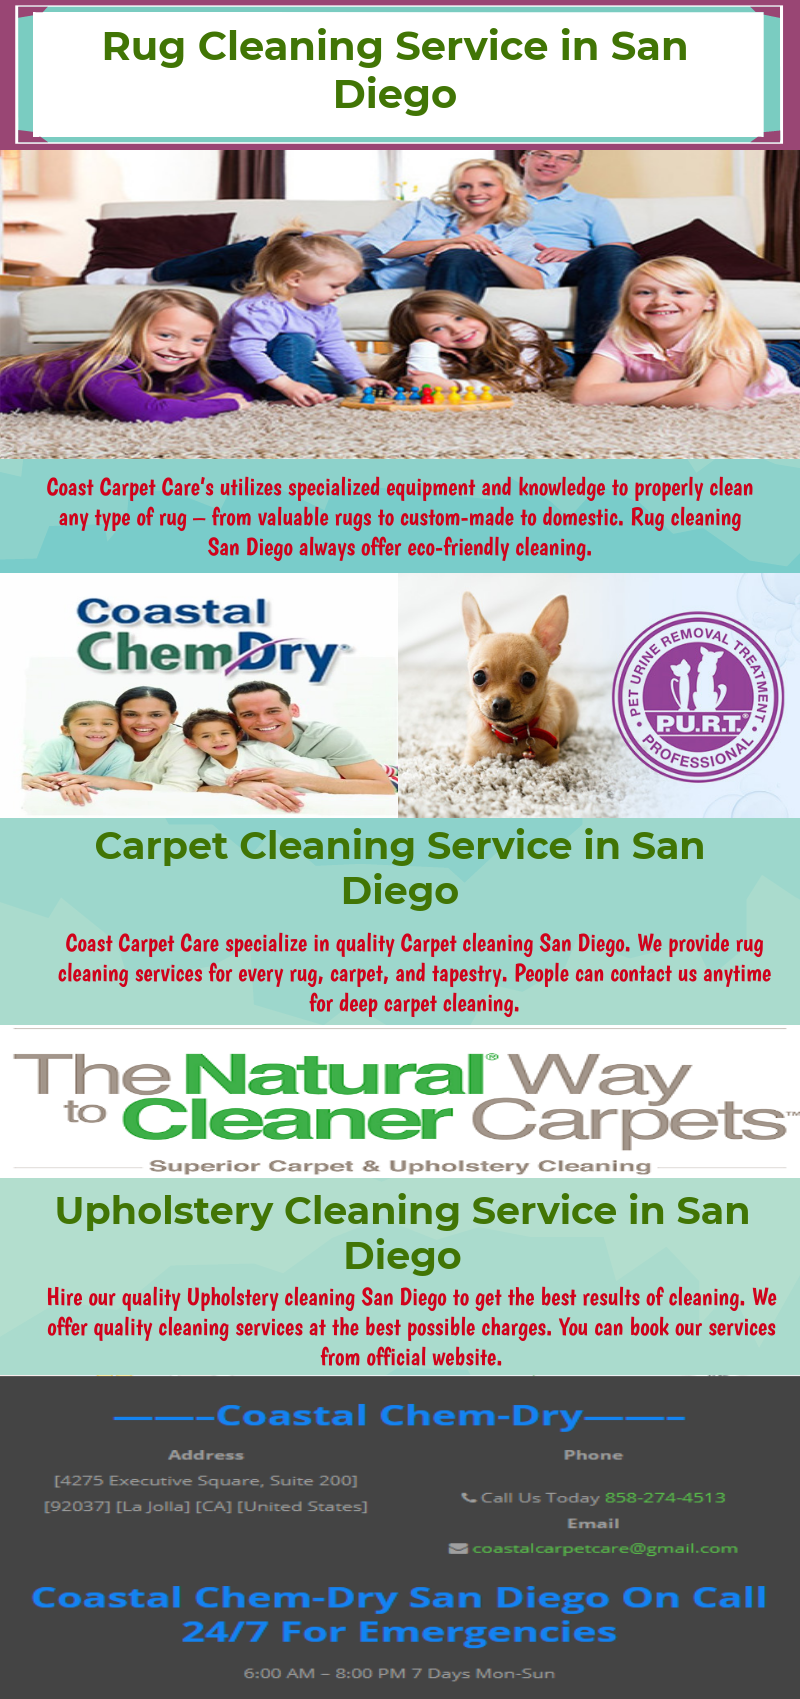 Coast Carpet Care's utilizes specialized equipment and knowledge to properly clean any type of rug – from valuable rugs to custom-made to domestic.